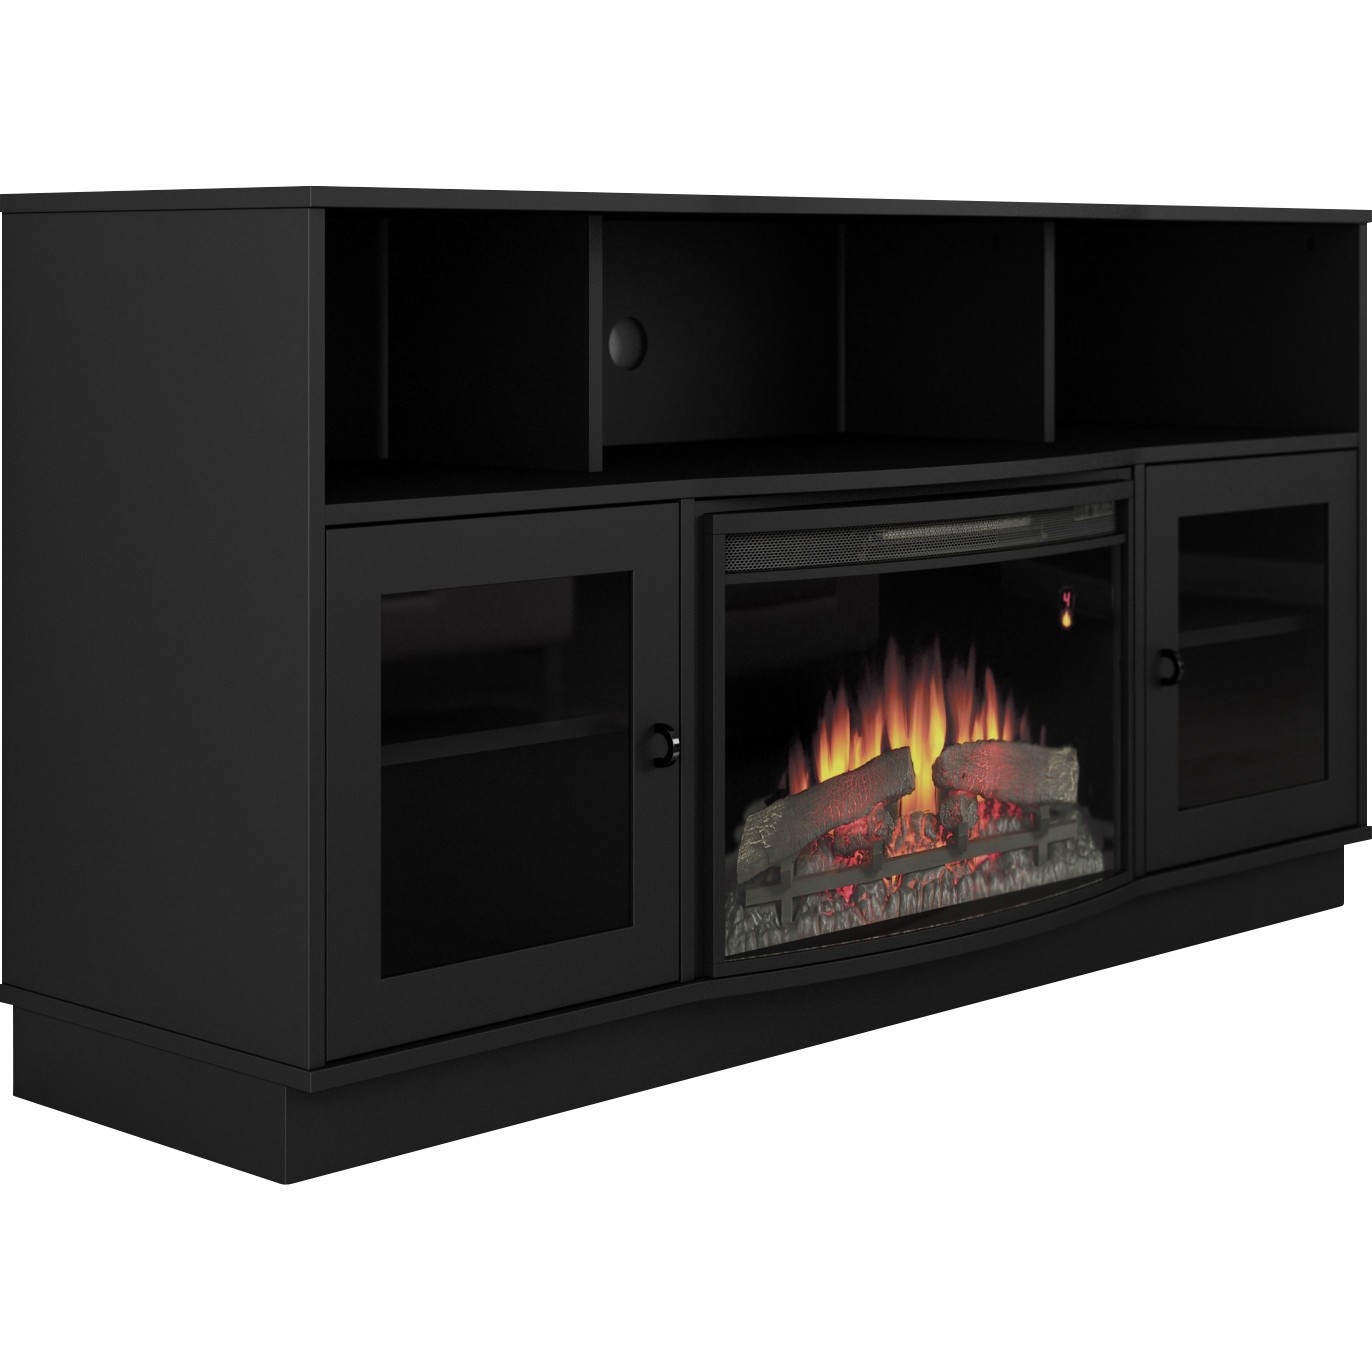 Best ideas about Modern Electric Fireplace Tv Stand . Save or Pin Furnitech Contemporary TV Stand with Electric Fireplace Now.